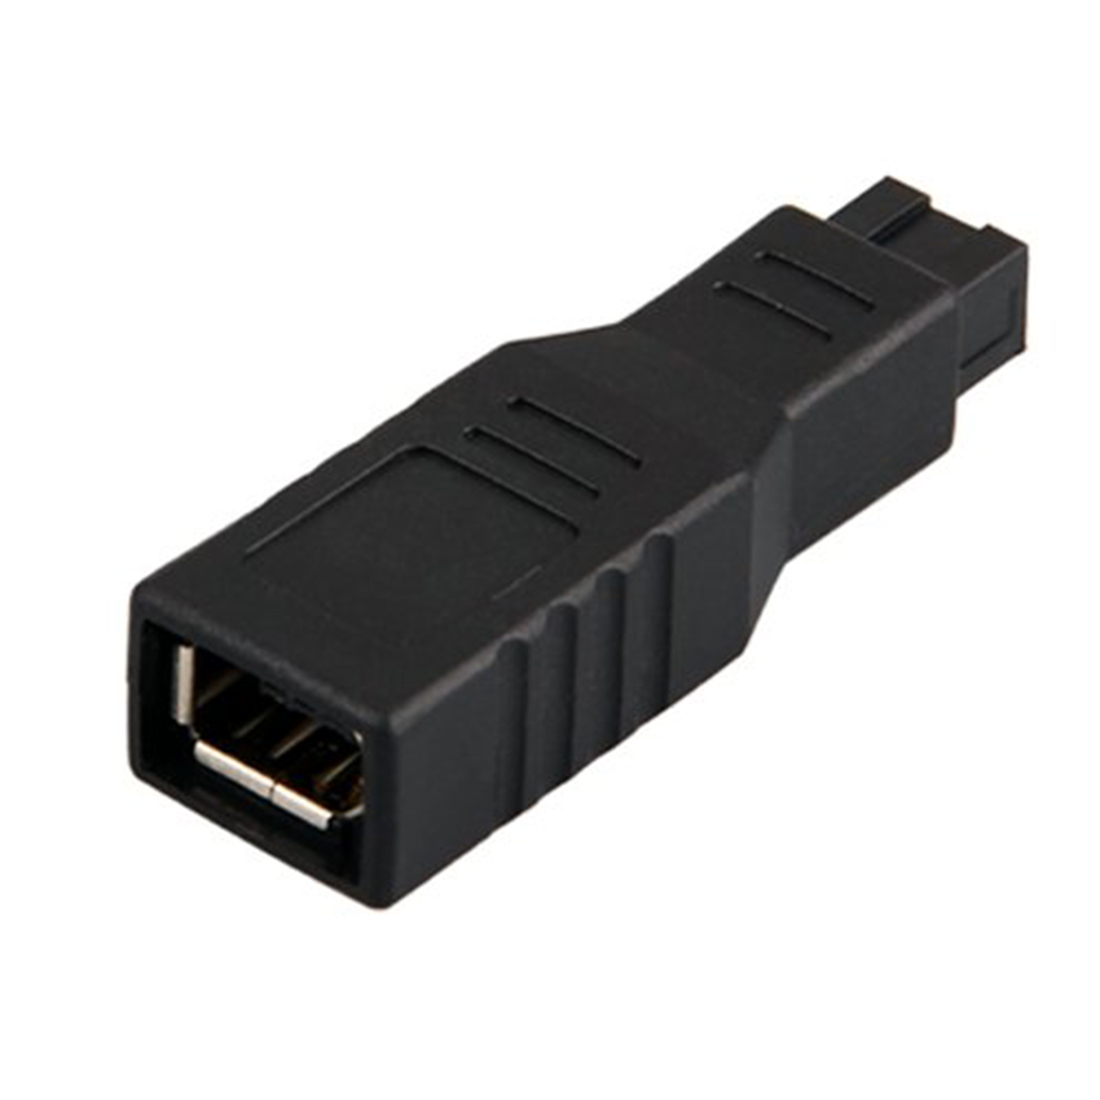 New Top Quality Black Firewire 400 to 800 Adapter - 6 pin to 9 pin Connector Wholesale аккумулятор team orion li po 14 8 v 4s 2300 mah 55c softcase xt60 racing drone battery